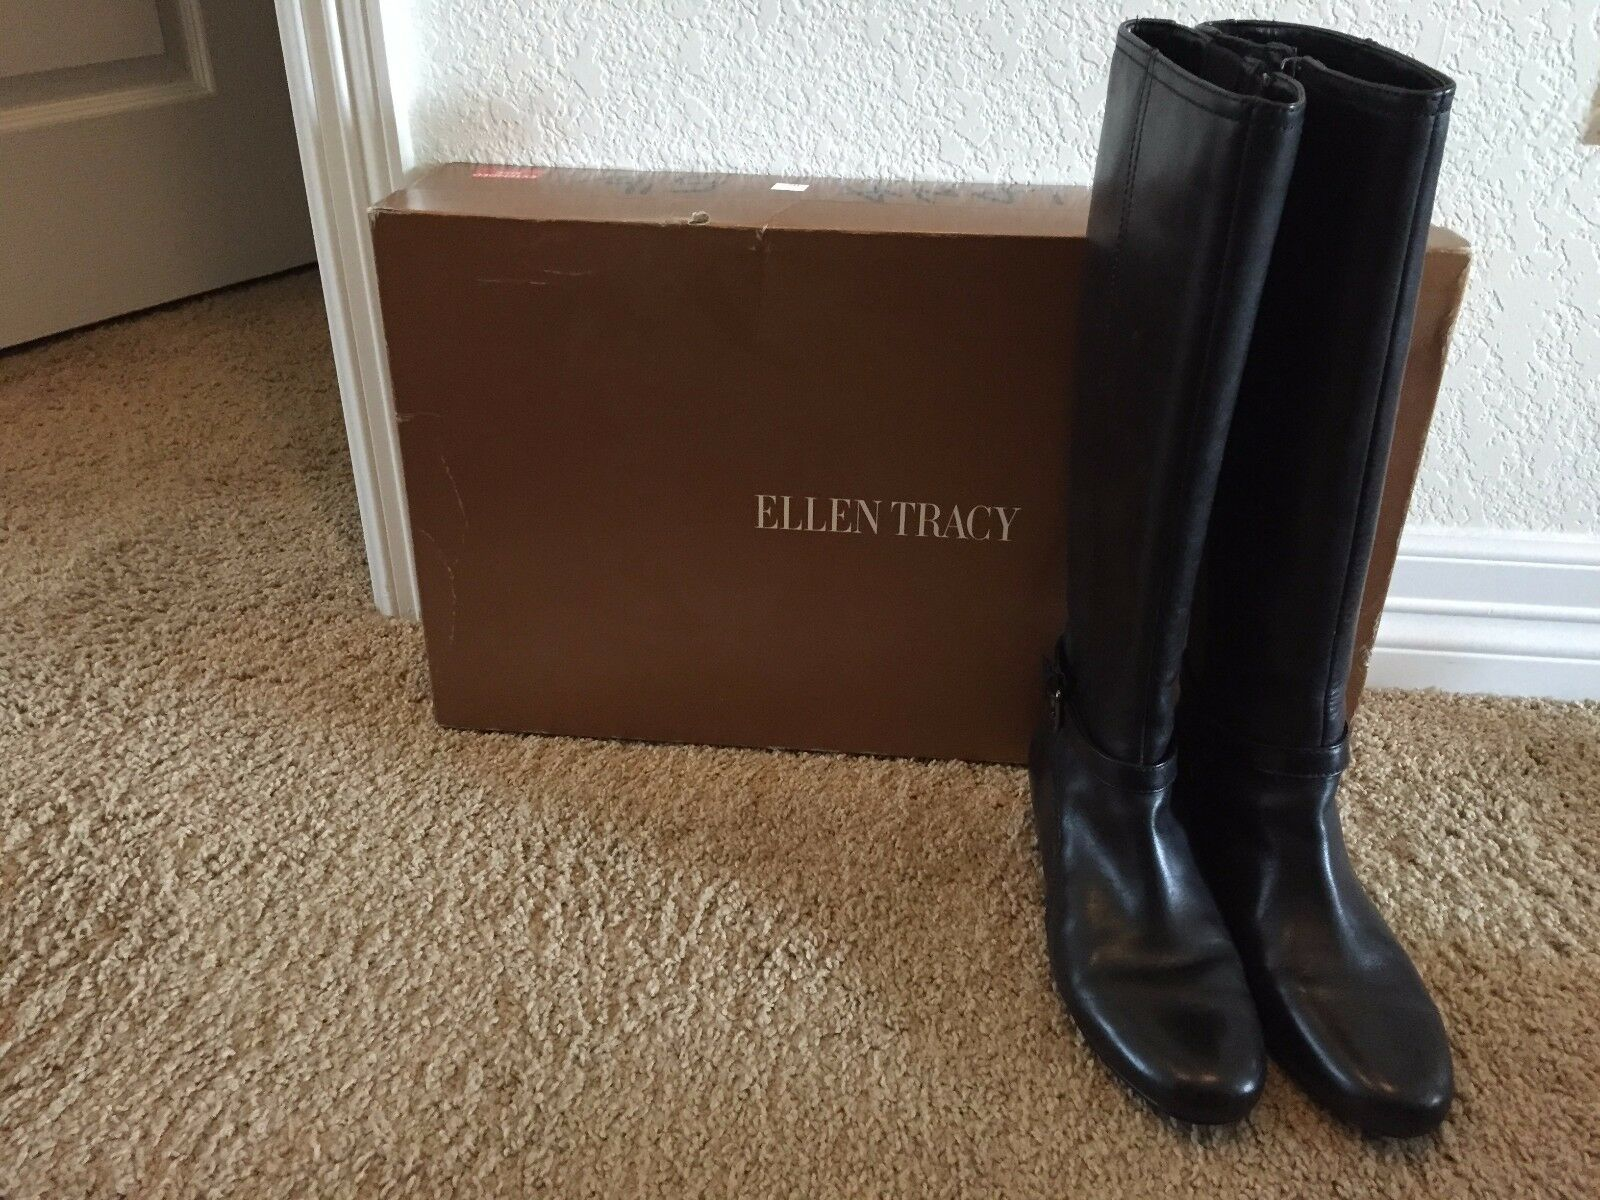 Ellen Tracy Women's EB-LANA Tall Black Leather Boots Size 5.5